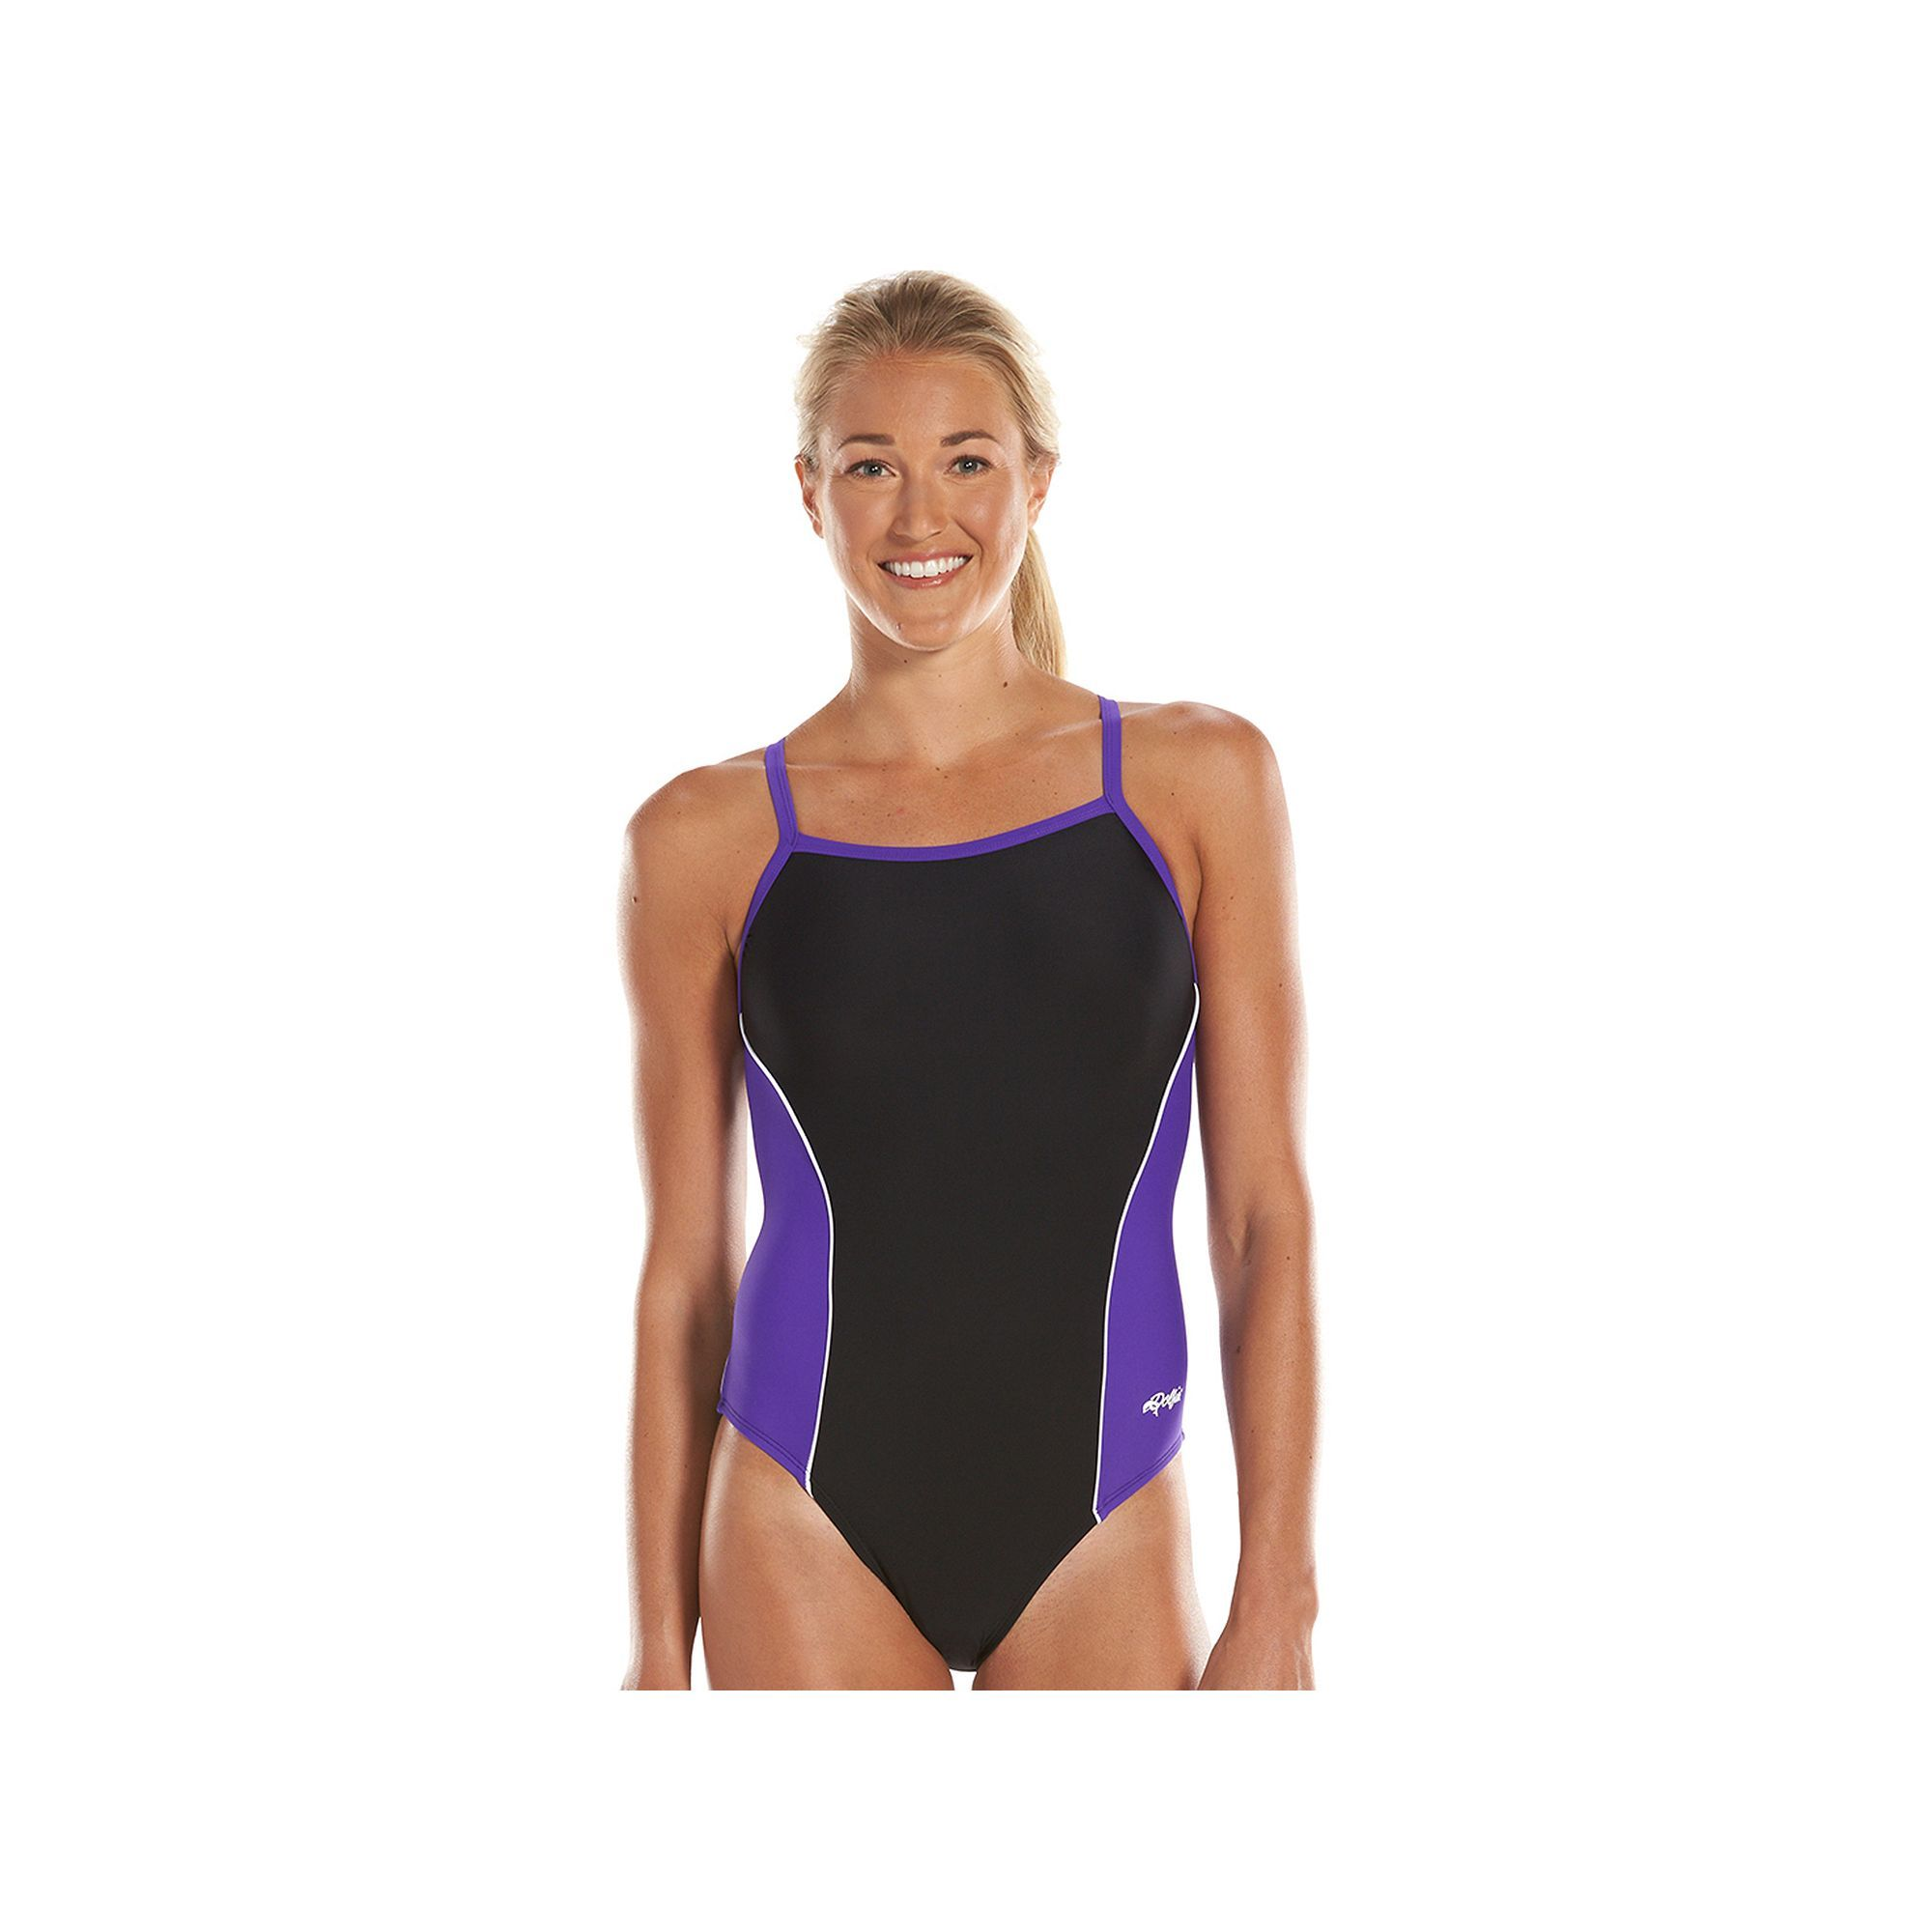 Women's Dolfin Team Colorblock V-2 Back Competitive One-Piece Swimsuit,  Size: